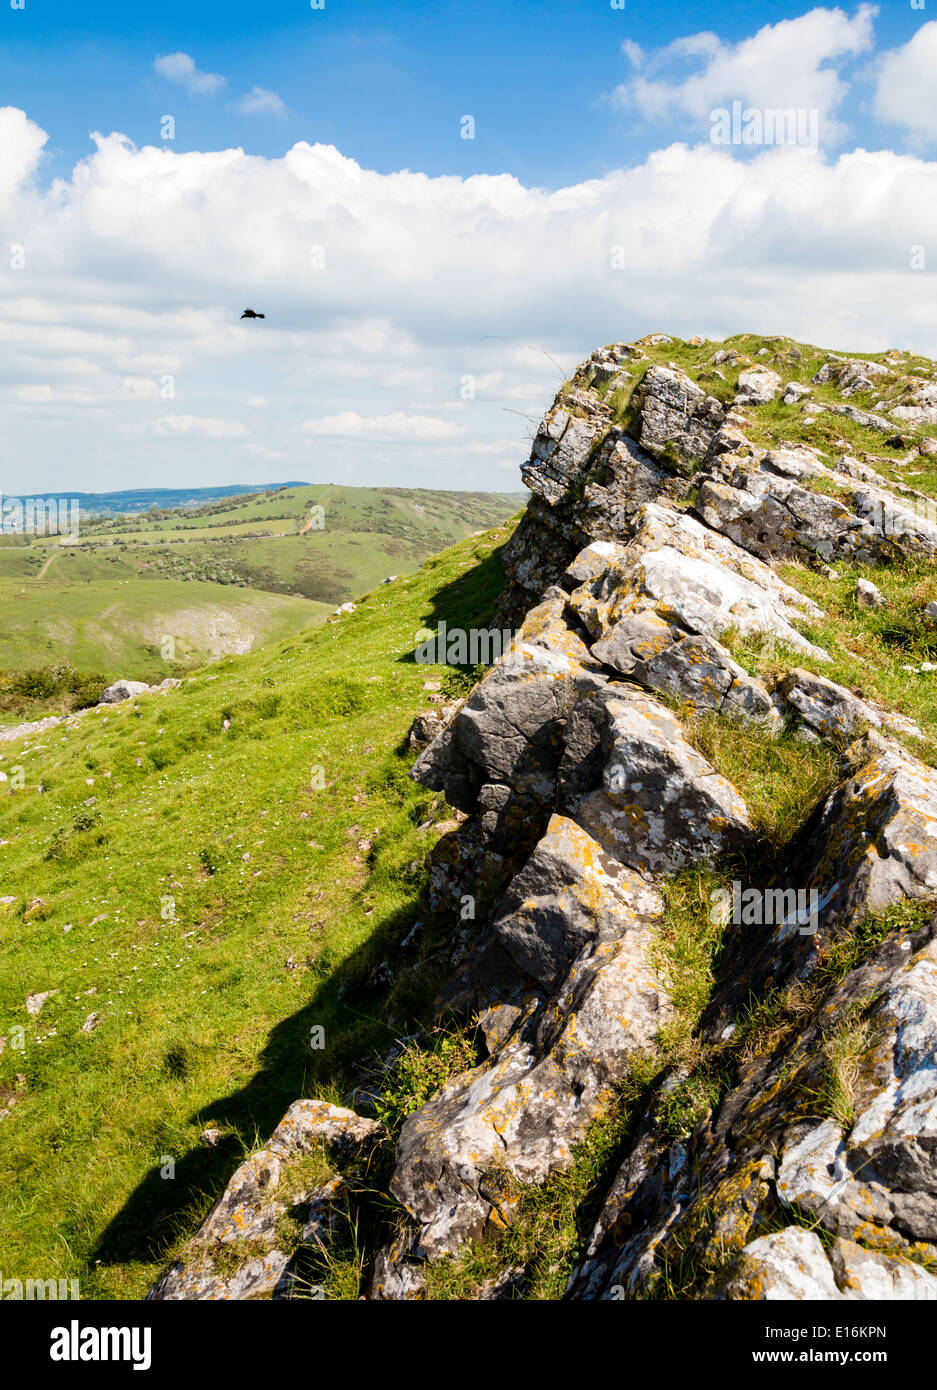 Carboniferous limestone scarp face of Crook Peak in the western Mendips looking towards Compton Hill - Somerset UK - Stock Image